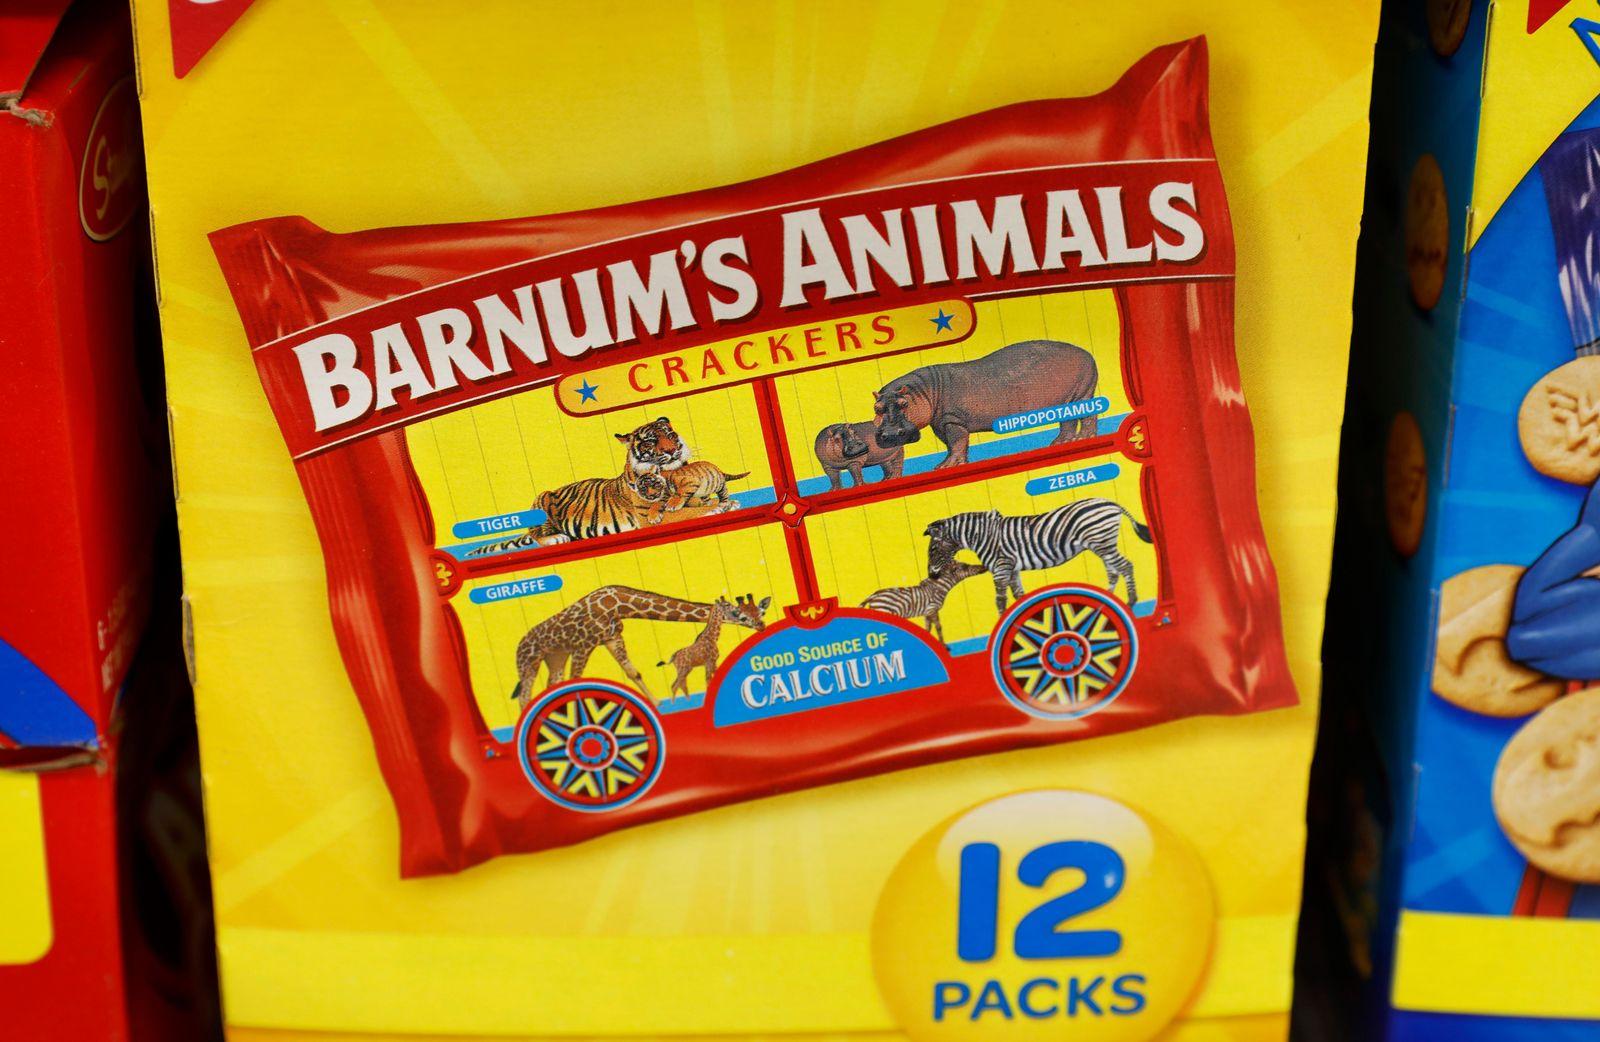 This Monday, Aug. 20, 2018, photo shows a multi-pack box of Nabisco Barnum's Animals crackers on the shelf of a local grocery store in Des Moines, Iowa. (AP Photo/Charlie Neibergall)